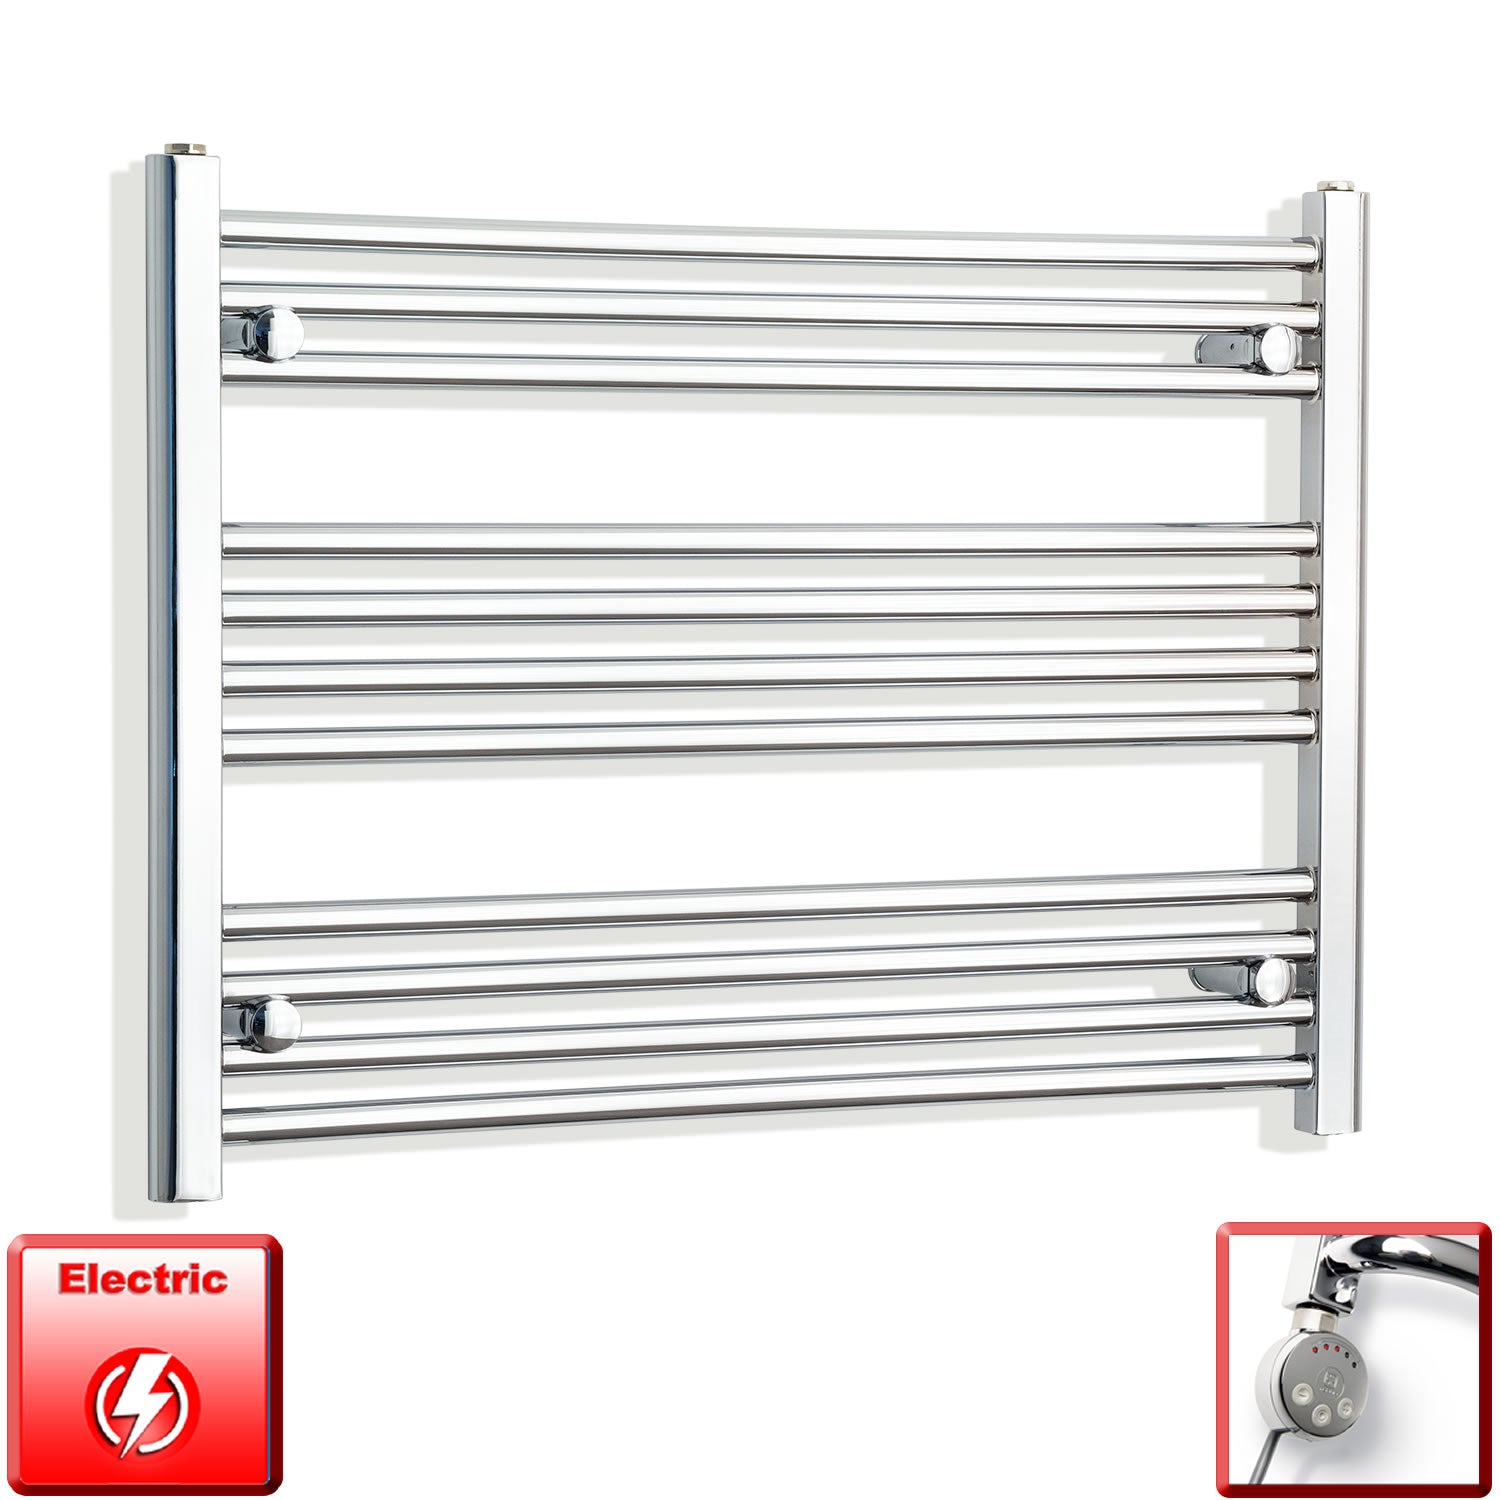 700mm Wide 600mm High Pre-Filled Chrome Electric Towel Rail Radiator With Thermostatic MEG Element